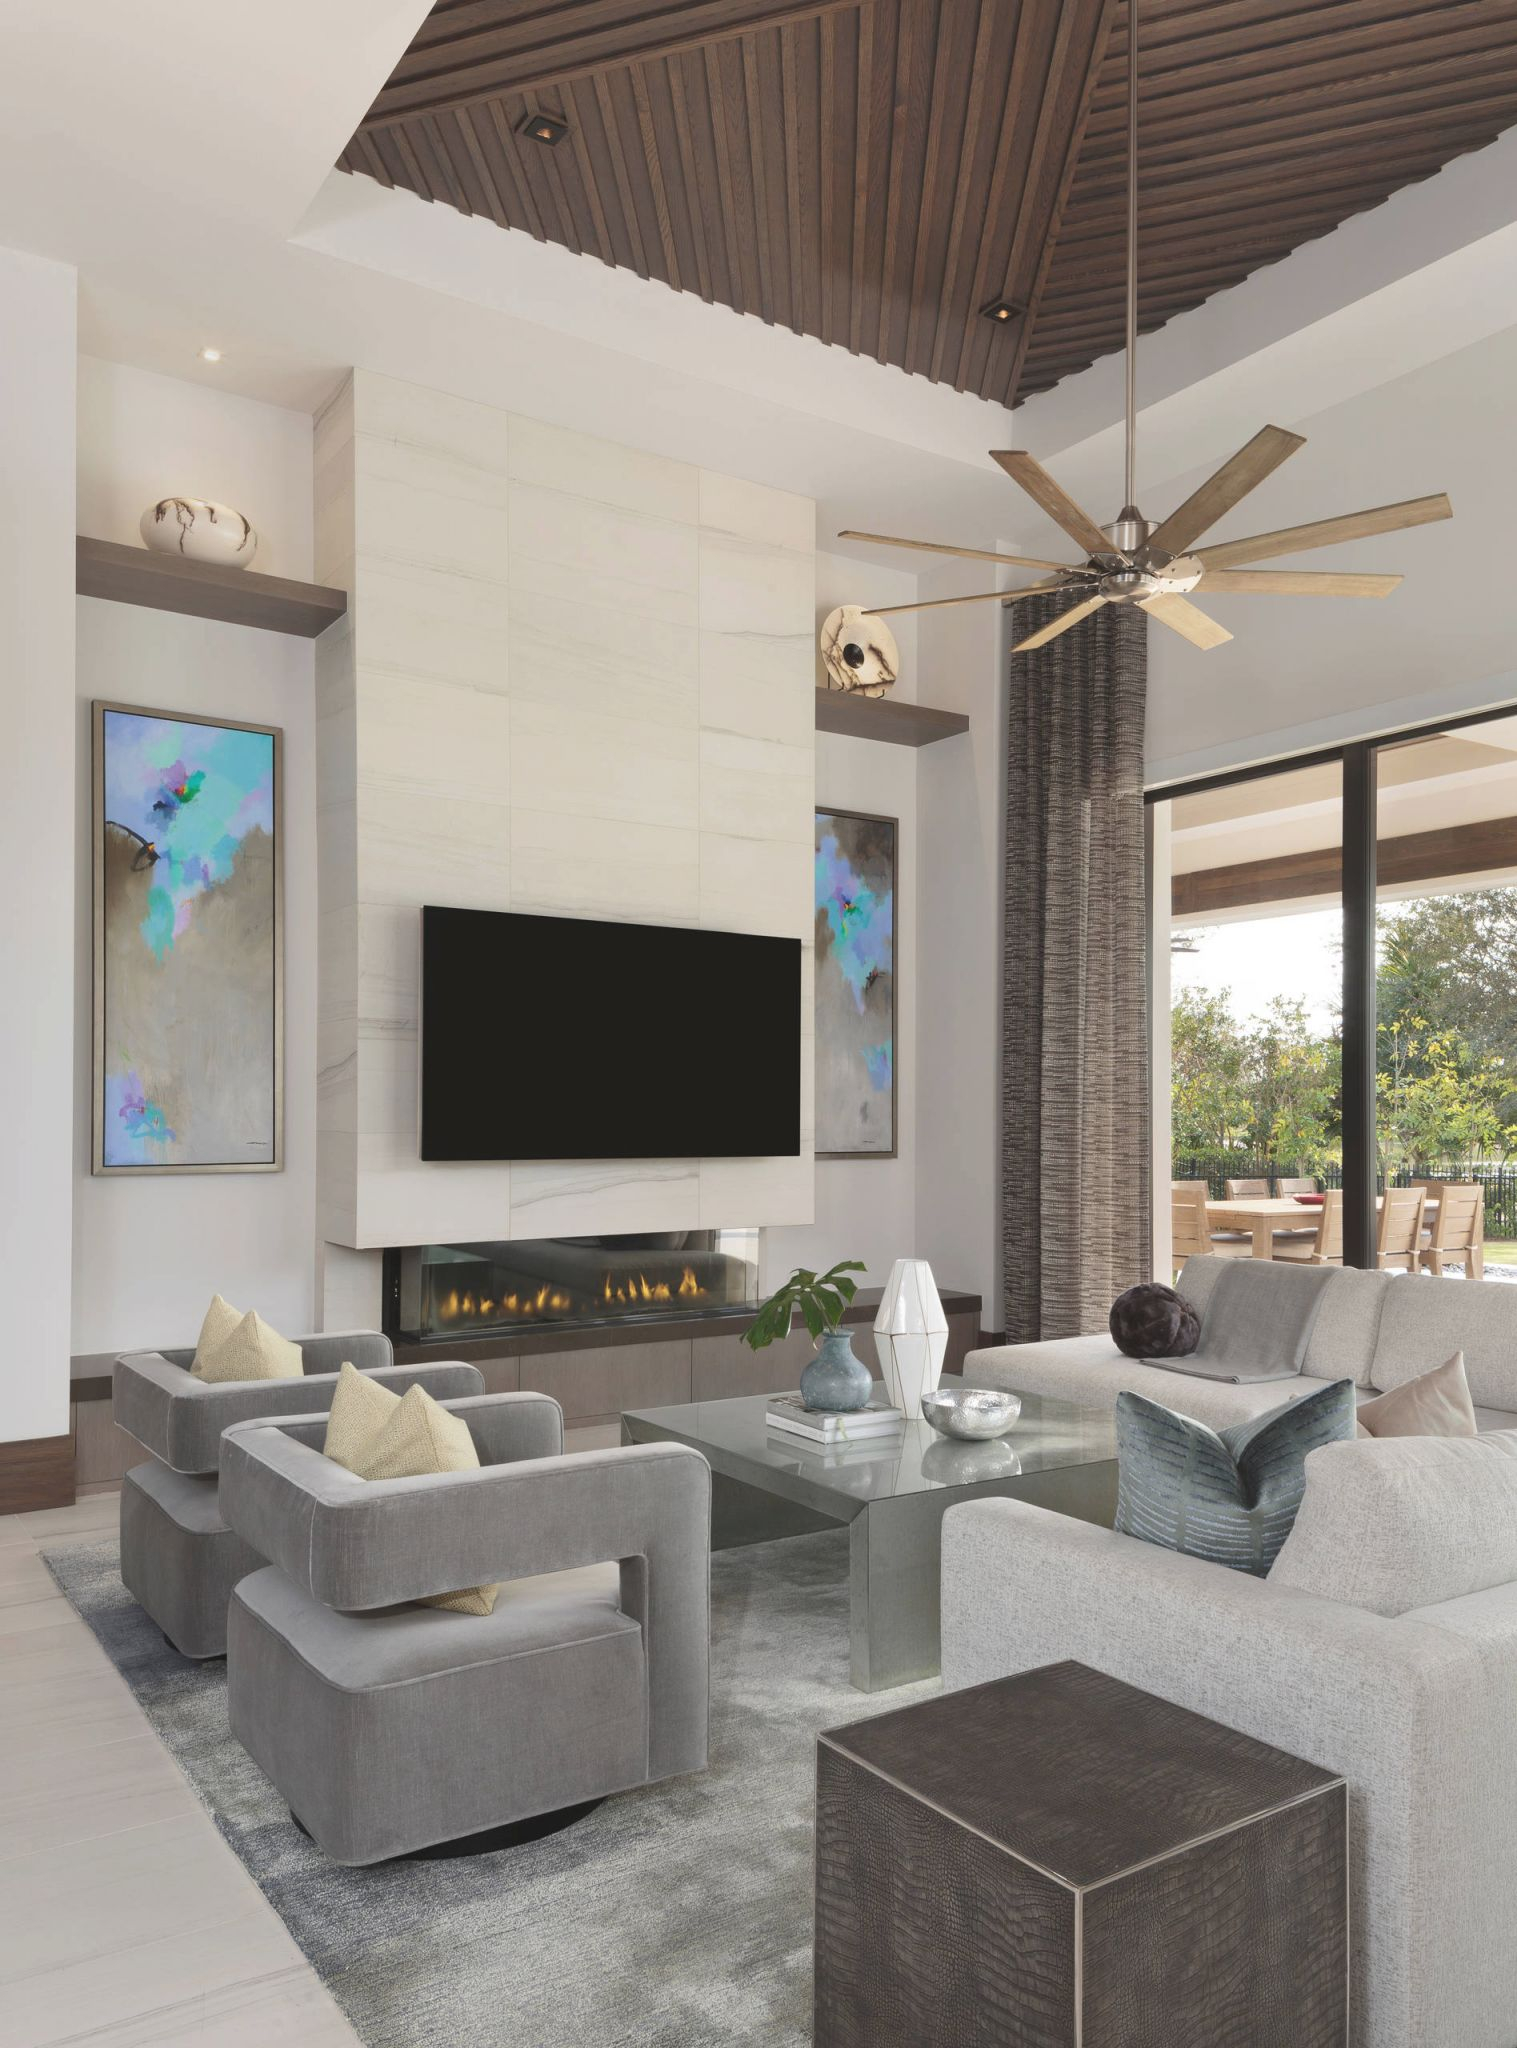 75 Beautiful Modern Living Room Pictures & Ideas - June pertaining to 8+ Amazing Ideas For Ideas For Living Room Decoration Modern